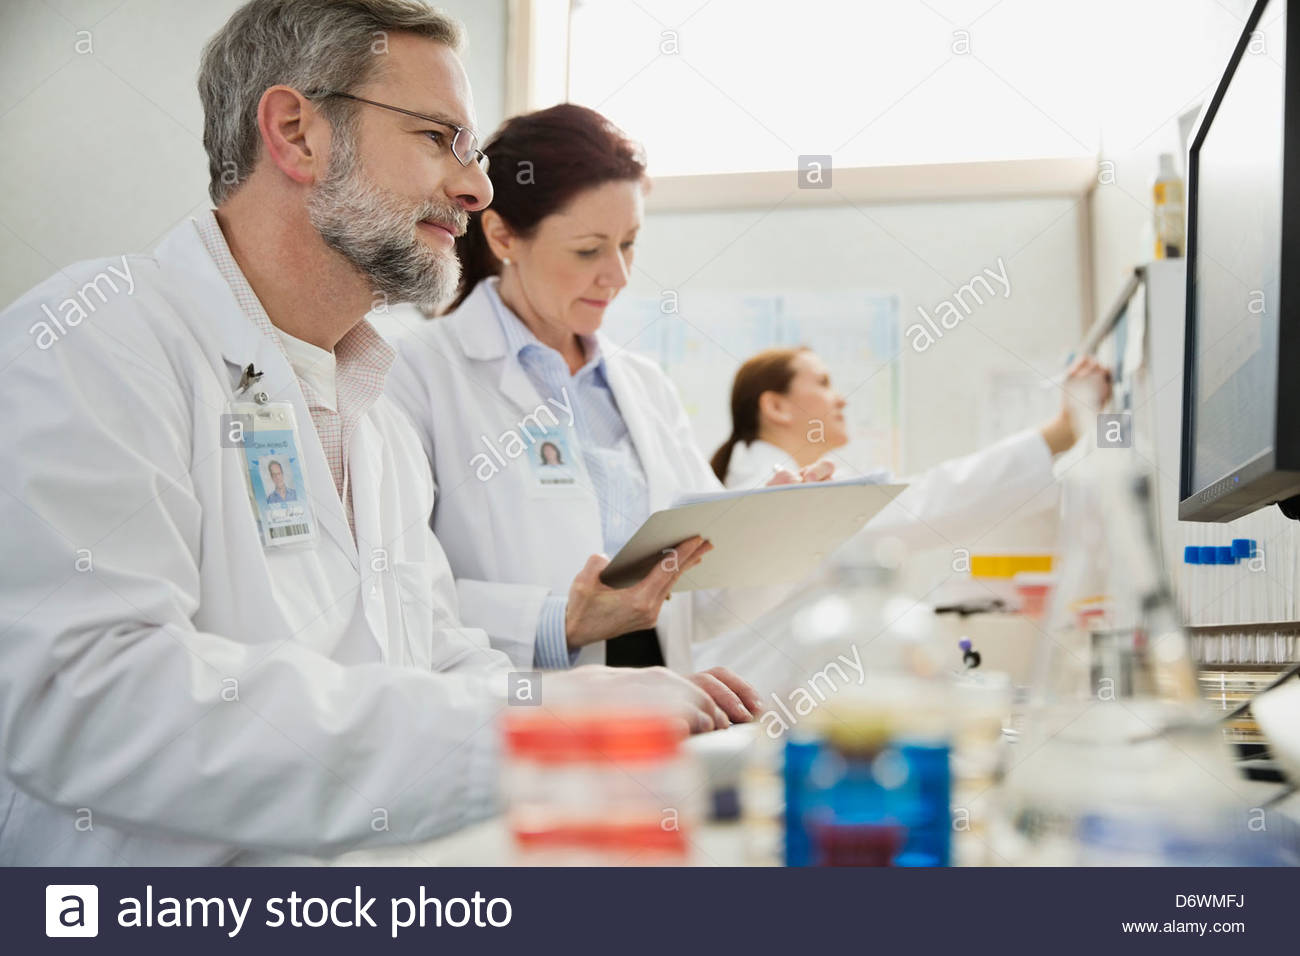 Mature male and female medical professionals working in lab - Stock Image